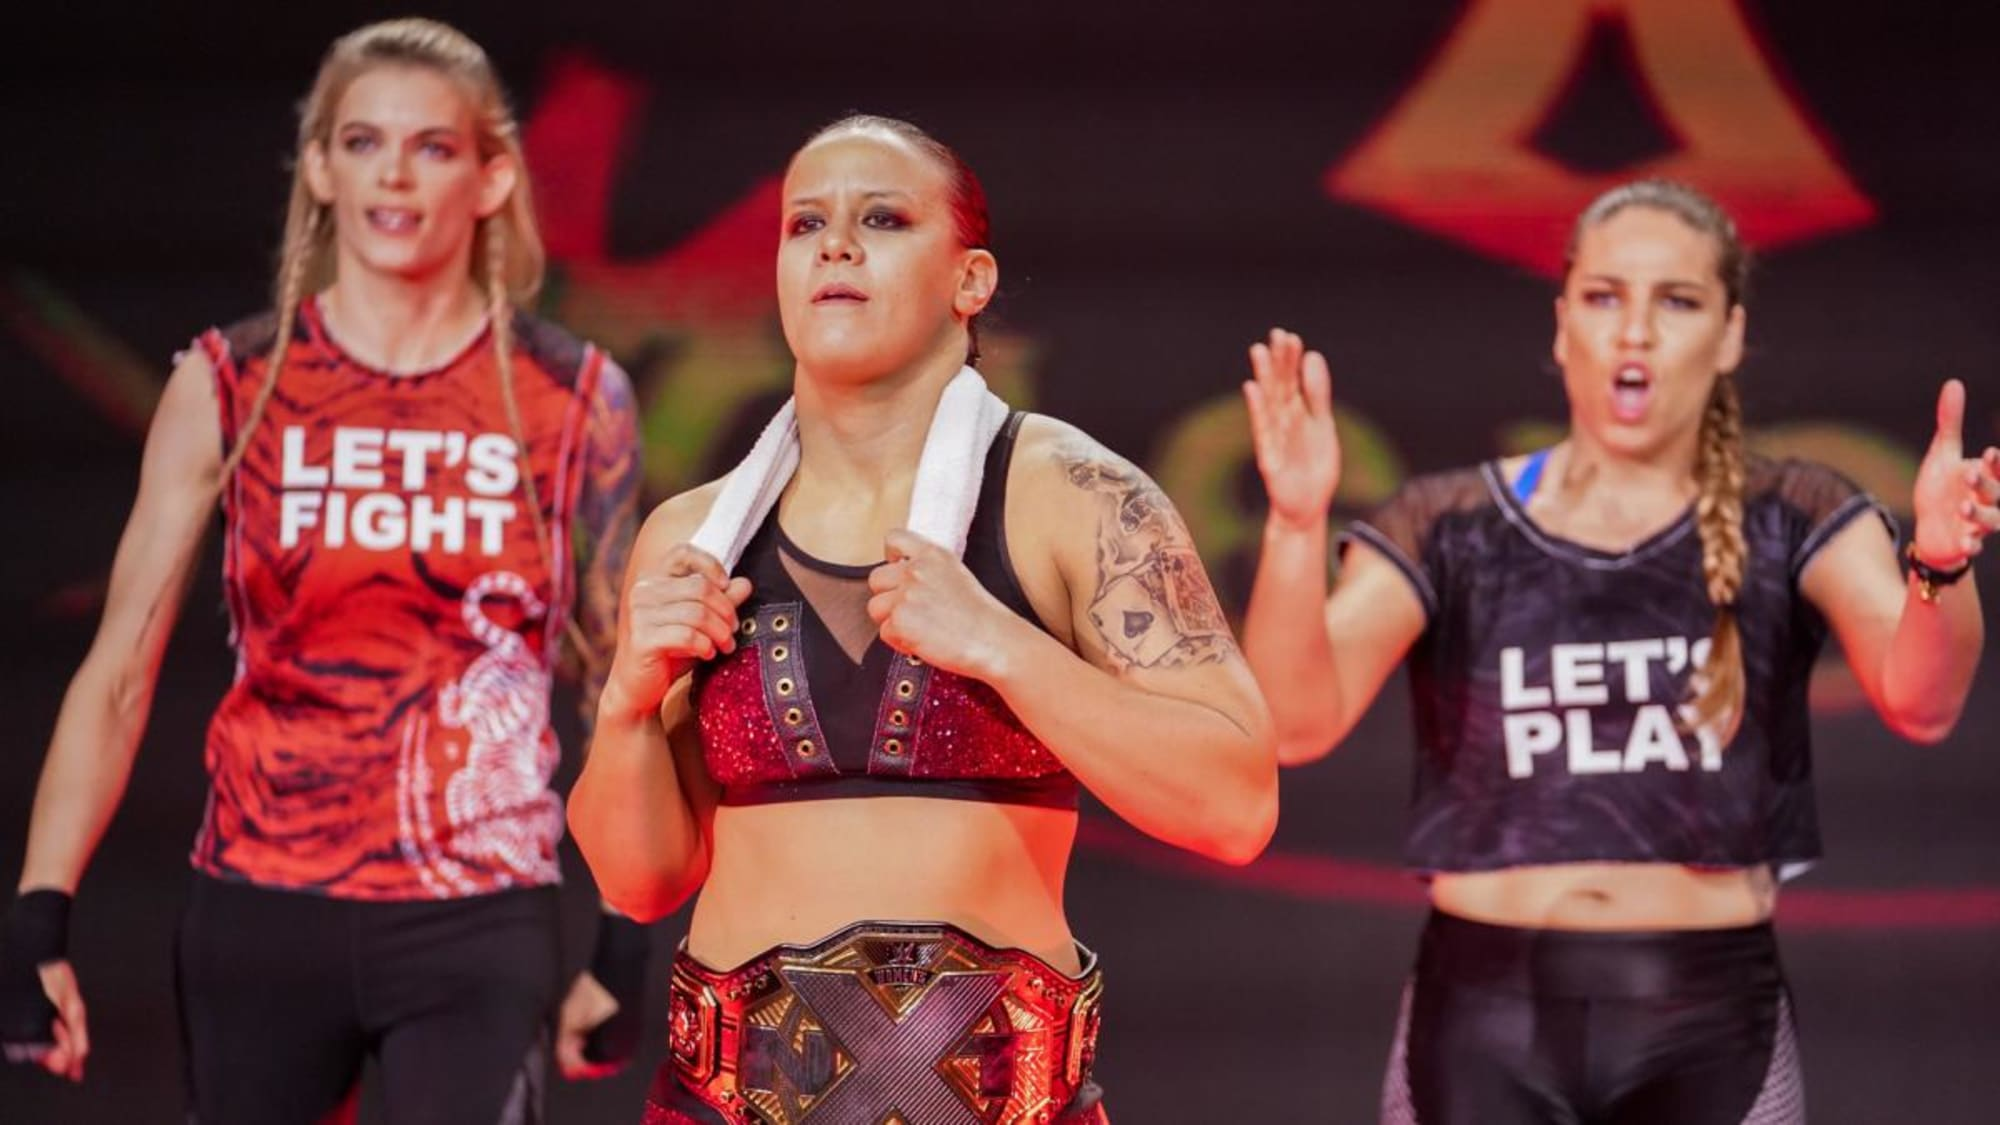 WWE Raw: Shayna Baszler should be the one to dethrone Asuka